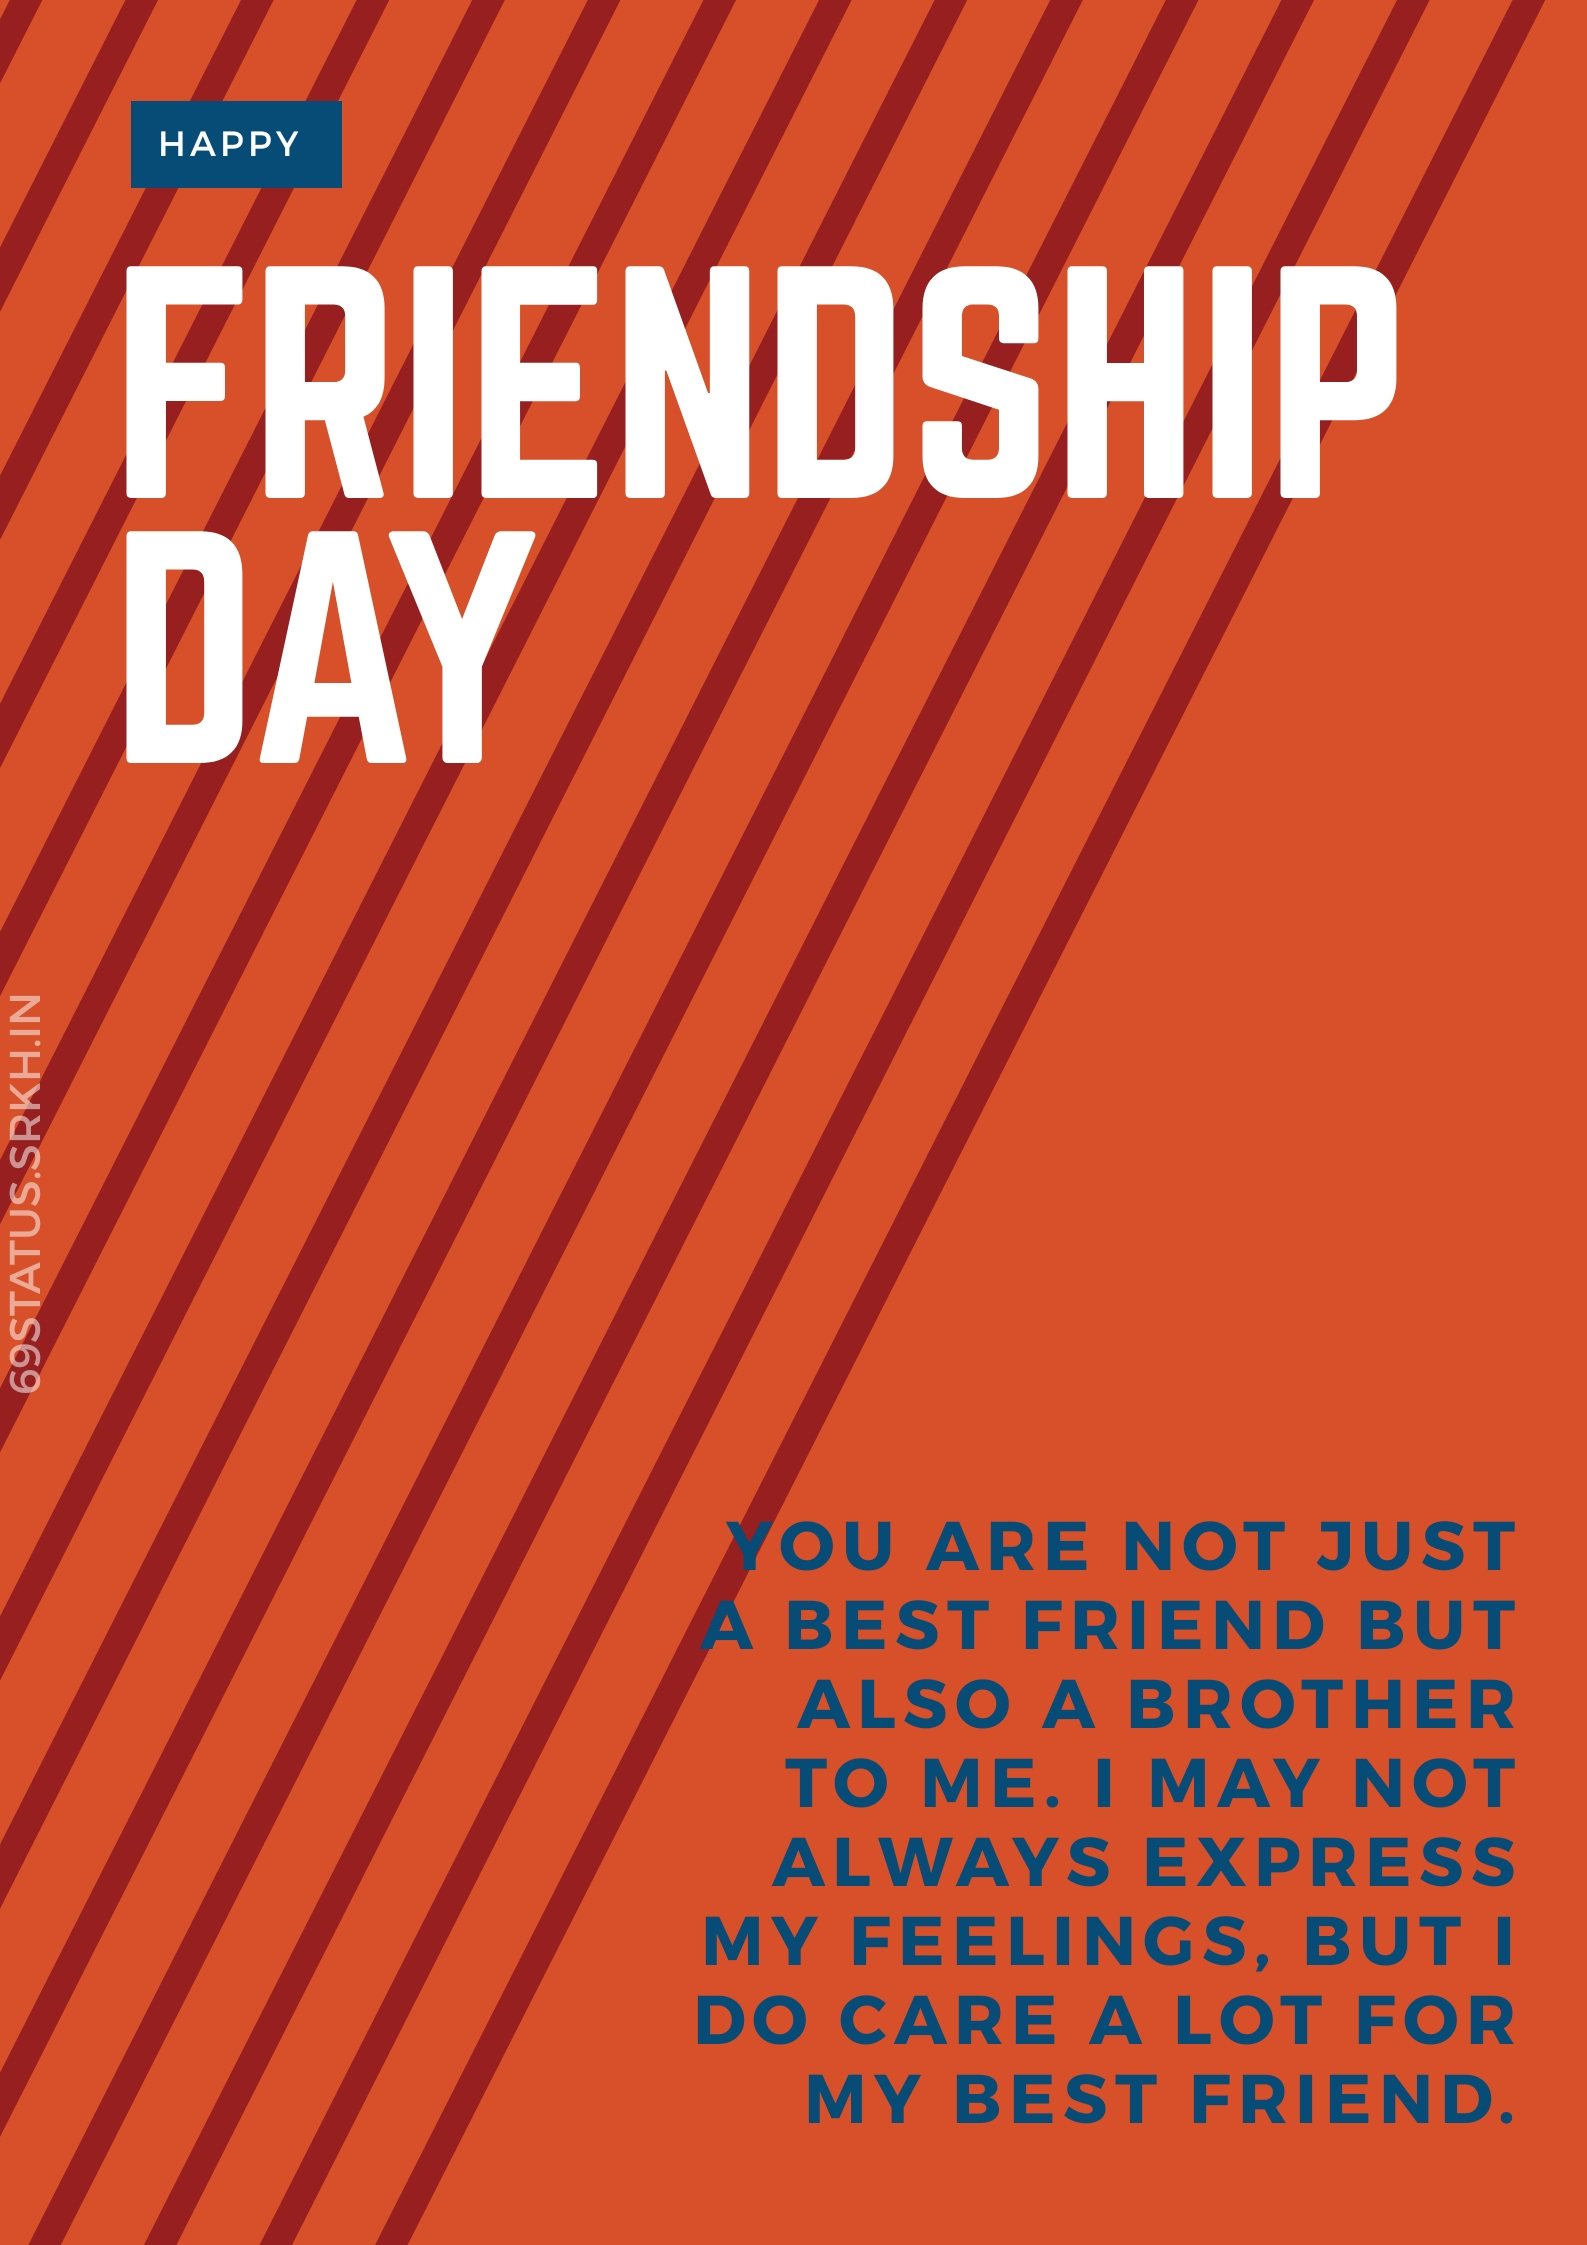 Happy Friendship Day Images for WhatsApp full HD free download.